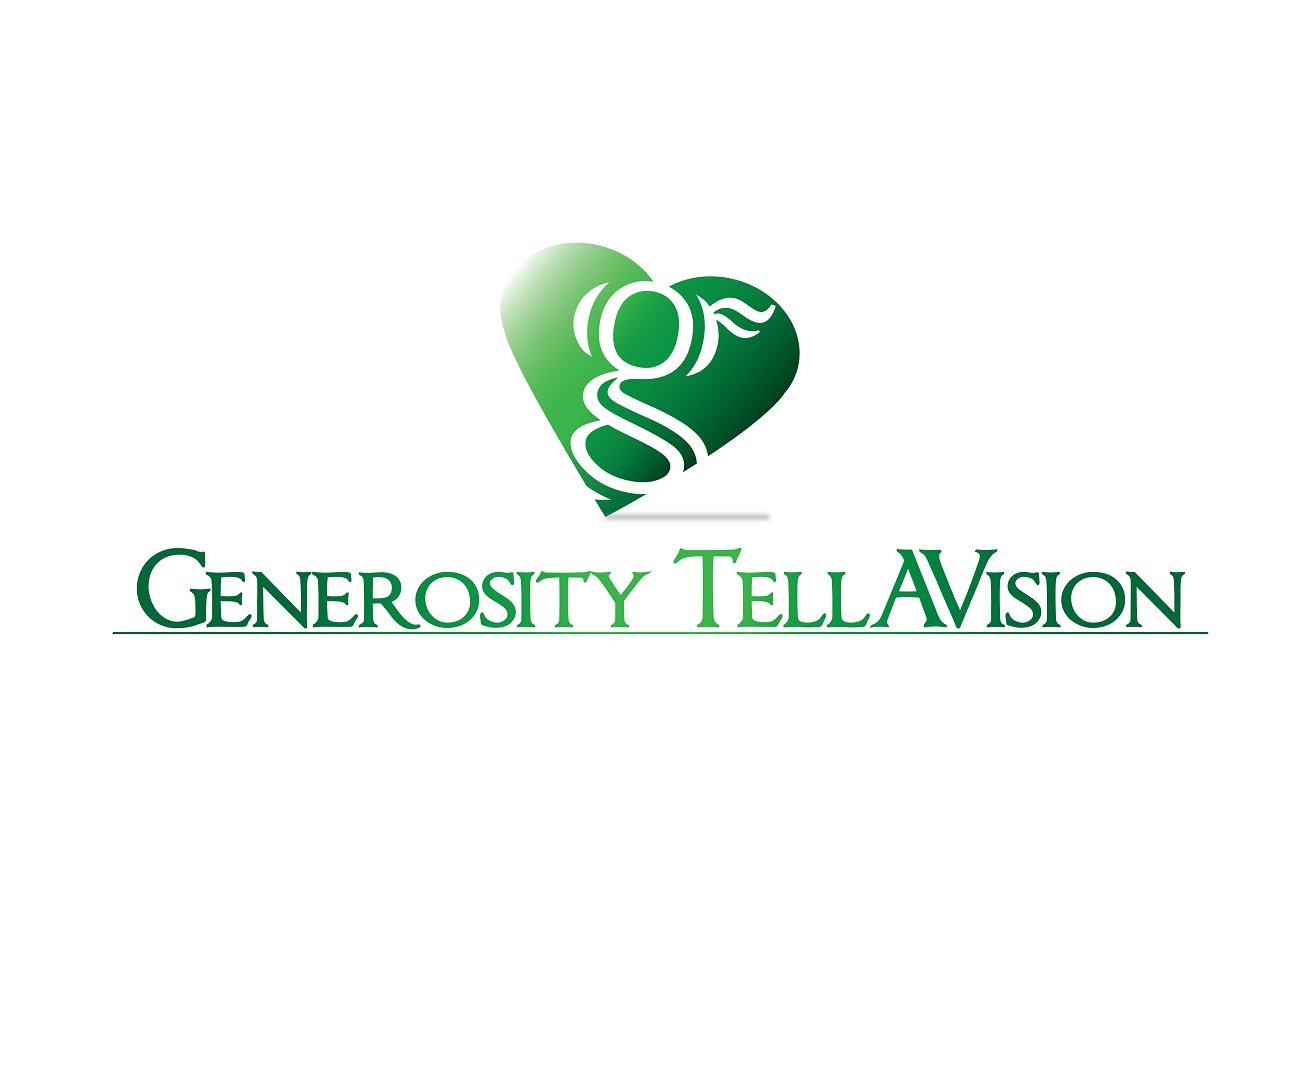 Logo Design by jhunzkie24 - Entry No. 89 in the Logo Design Contest Artistic Logo Design for Generosity TellAVision.